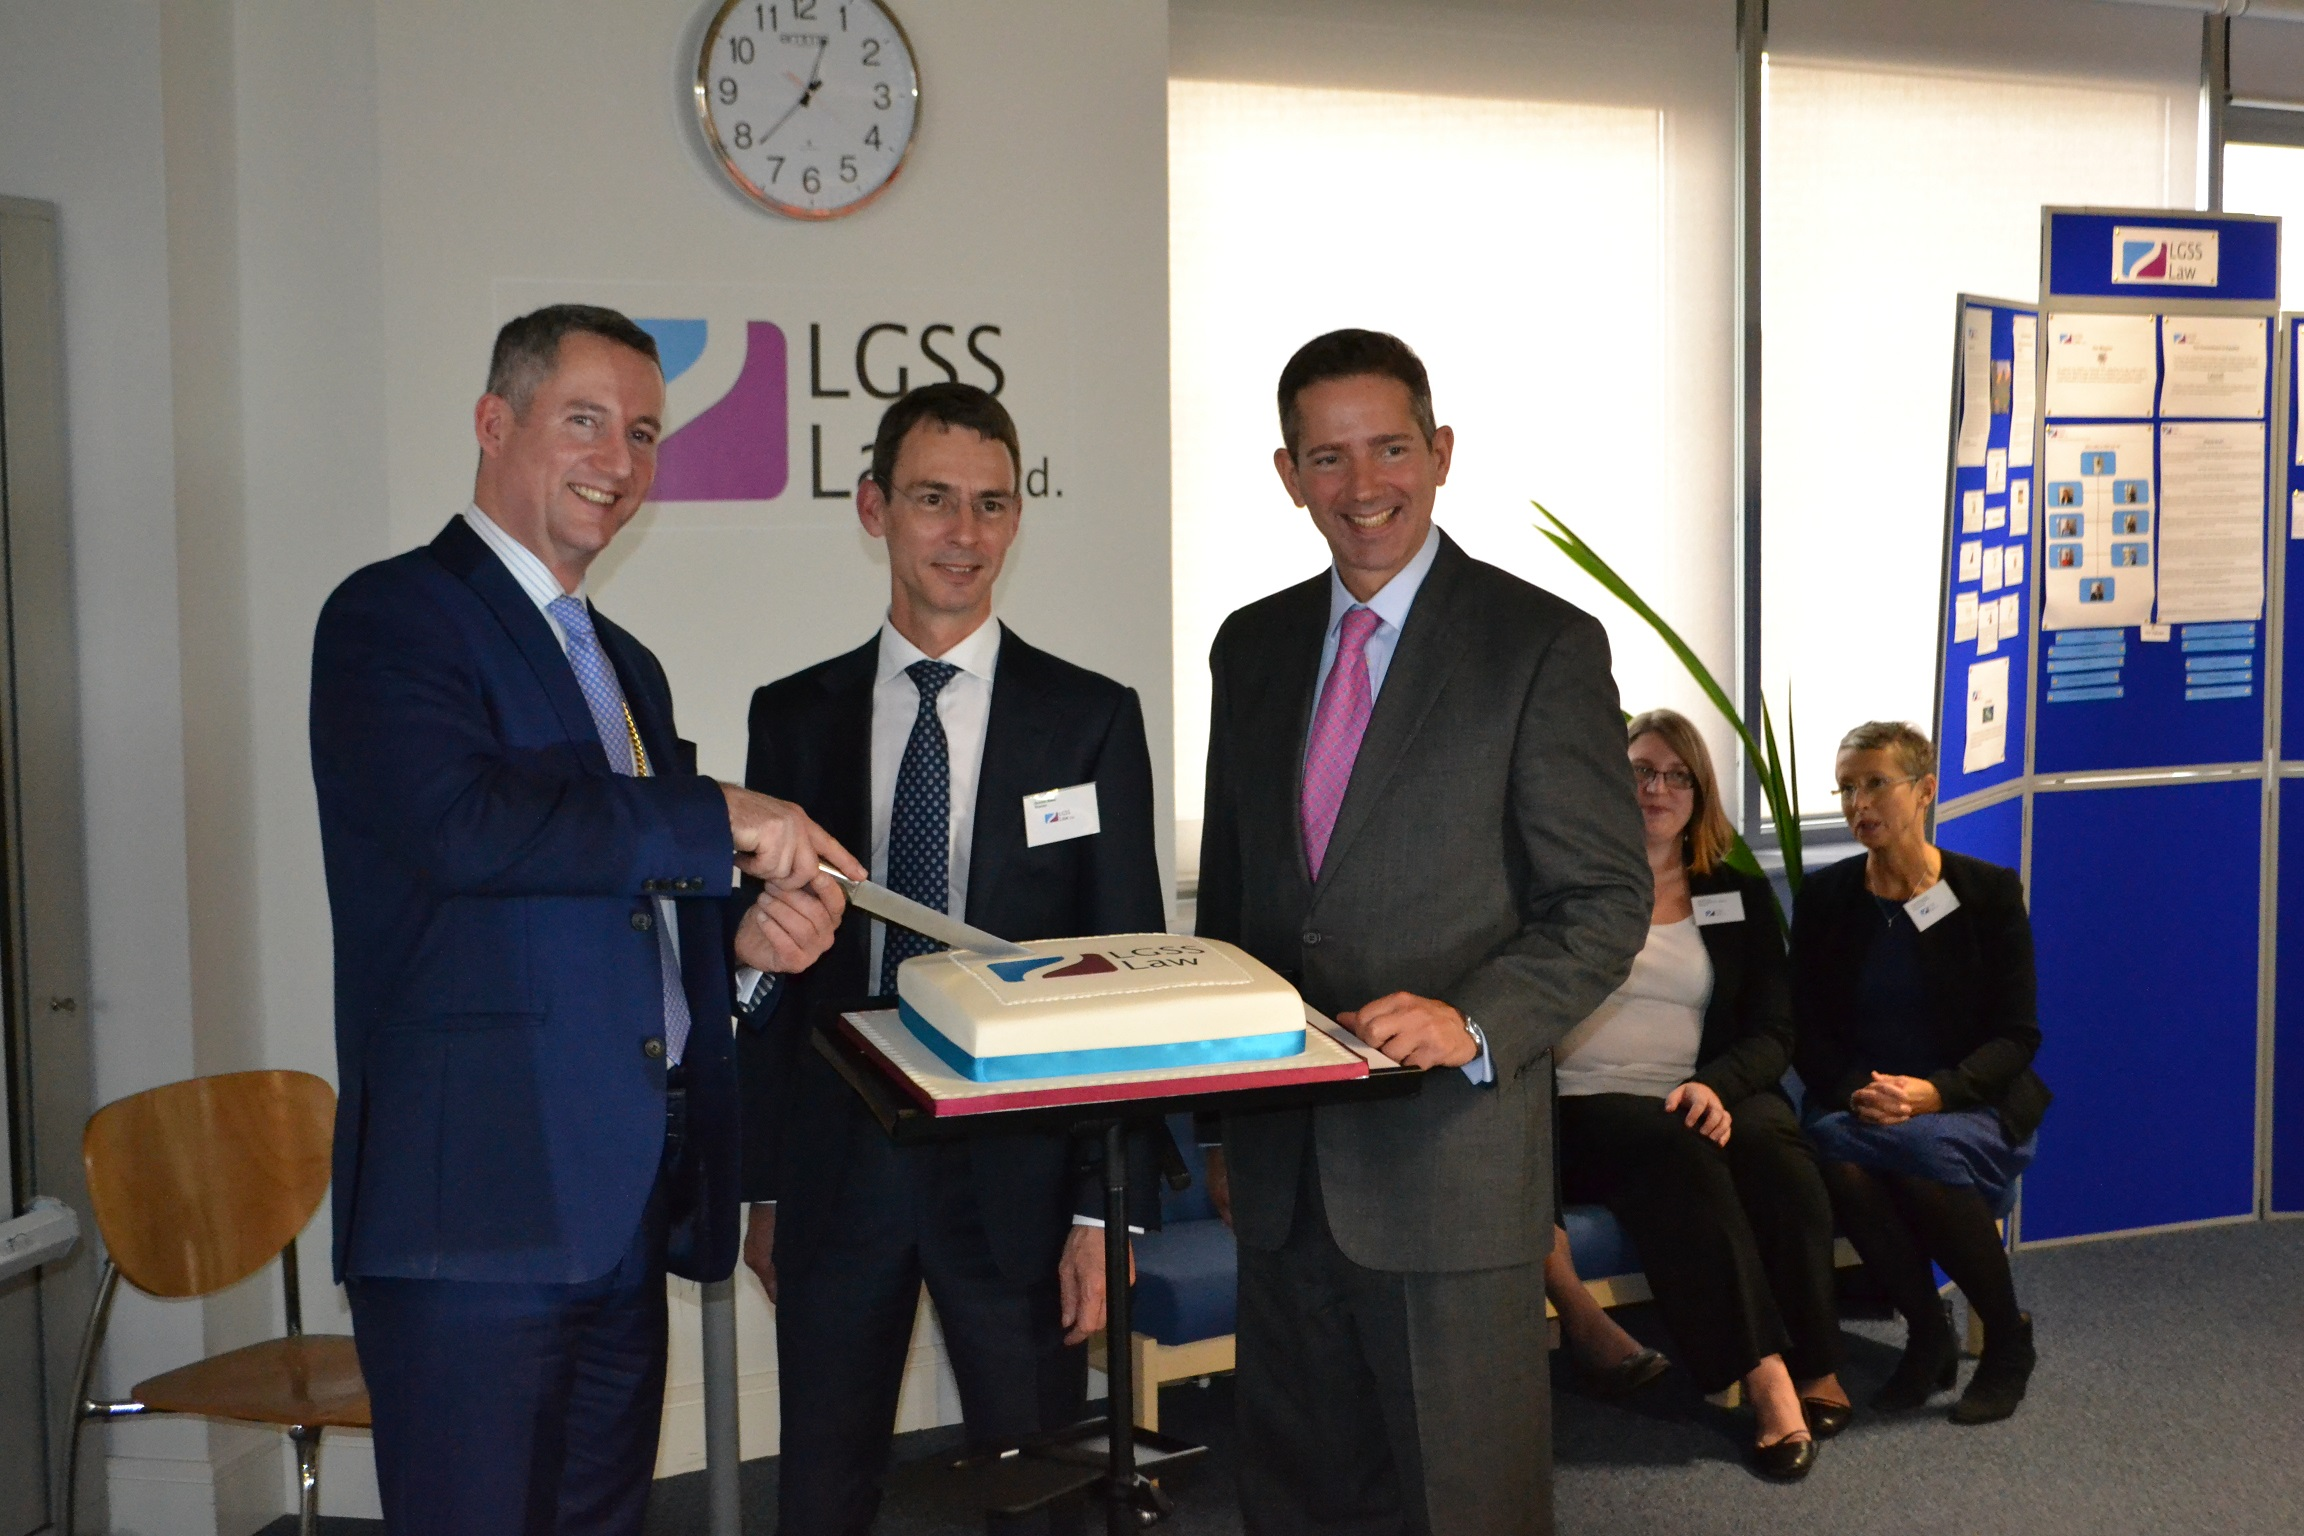 Formal Launch of the new headquarters for LGSS Law Ltd